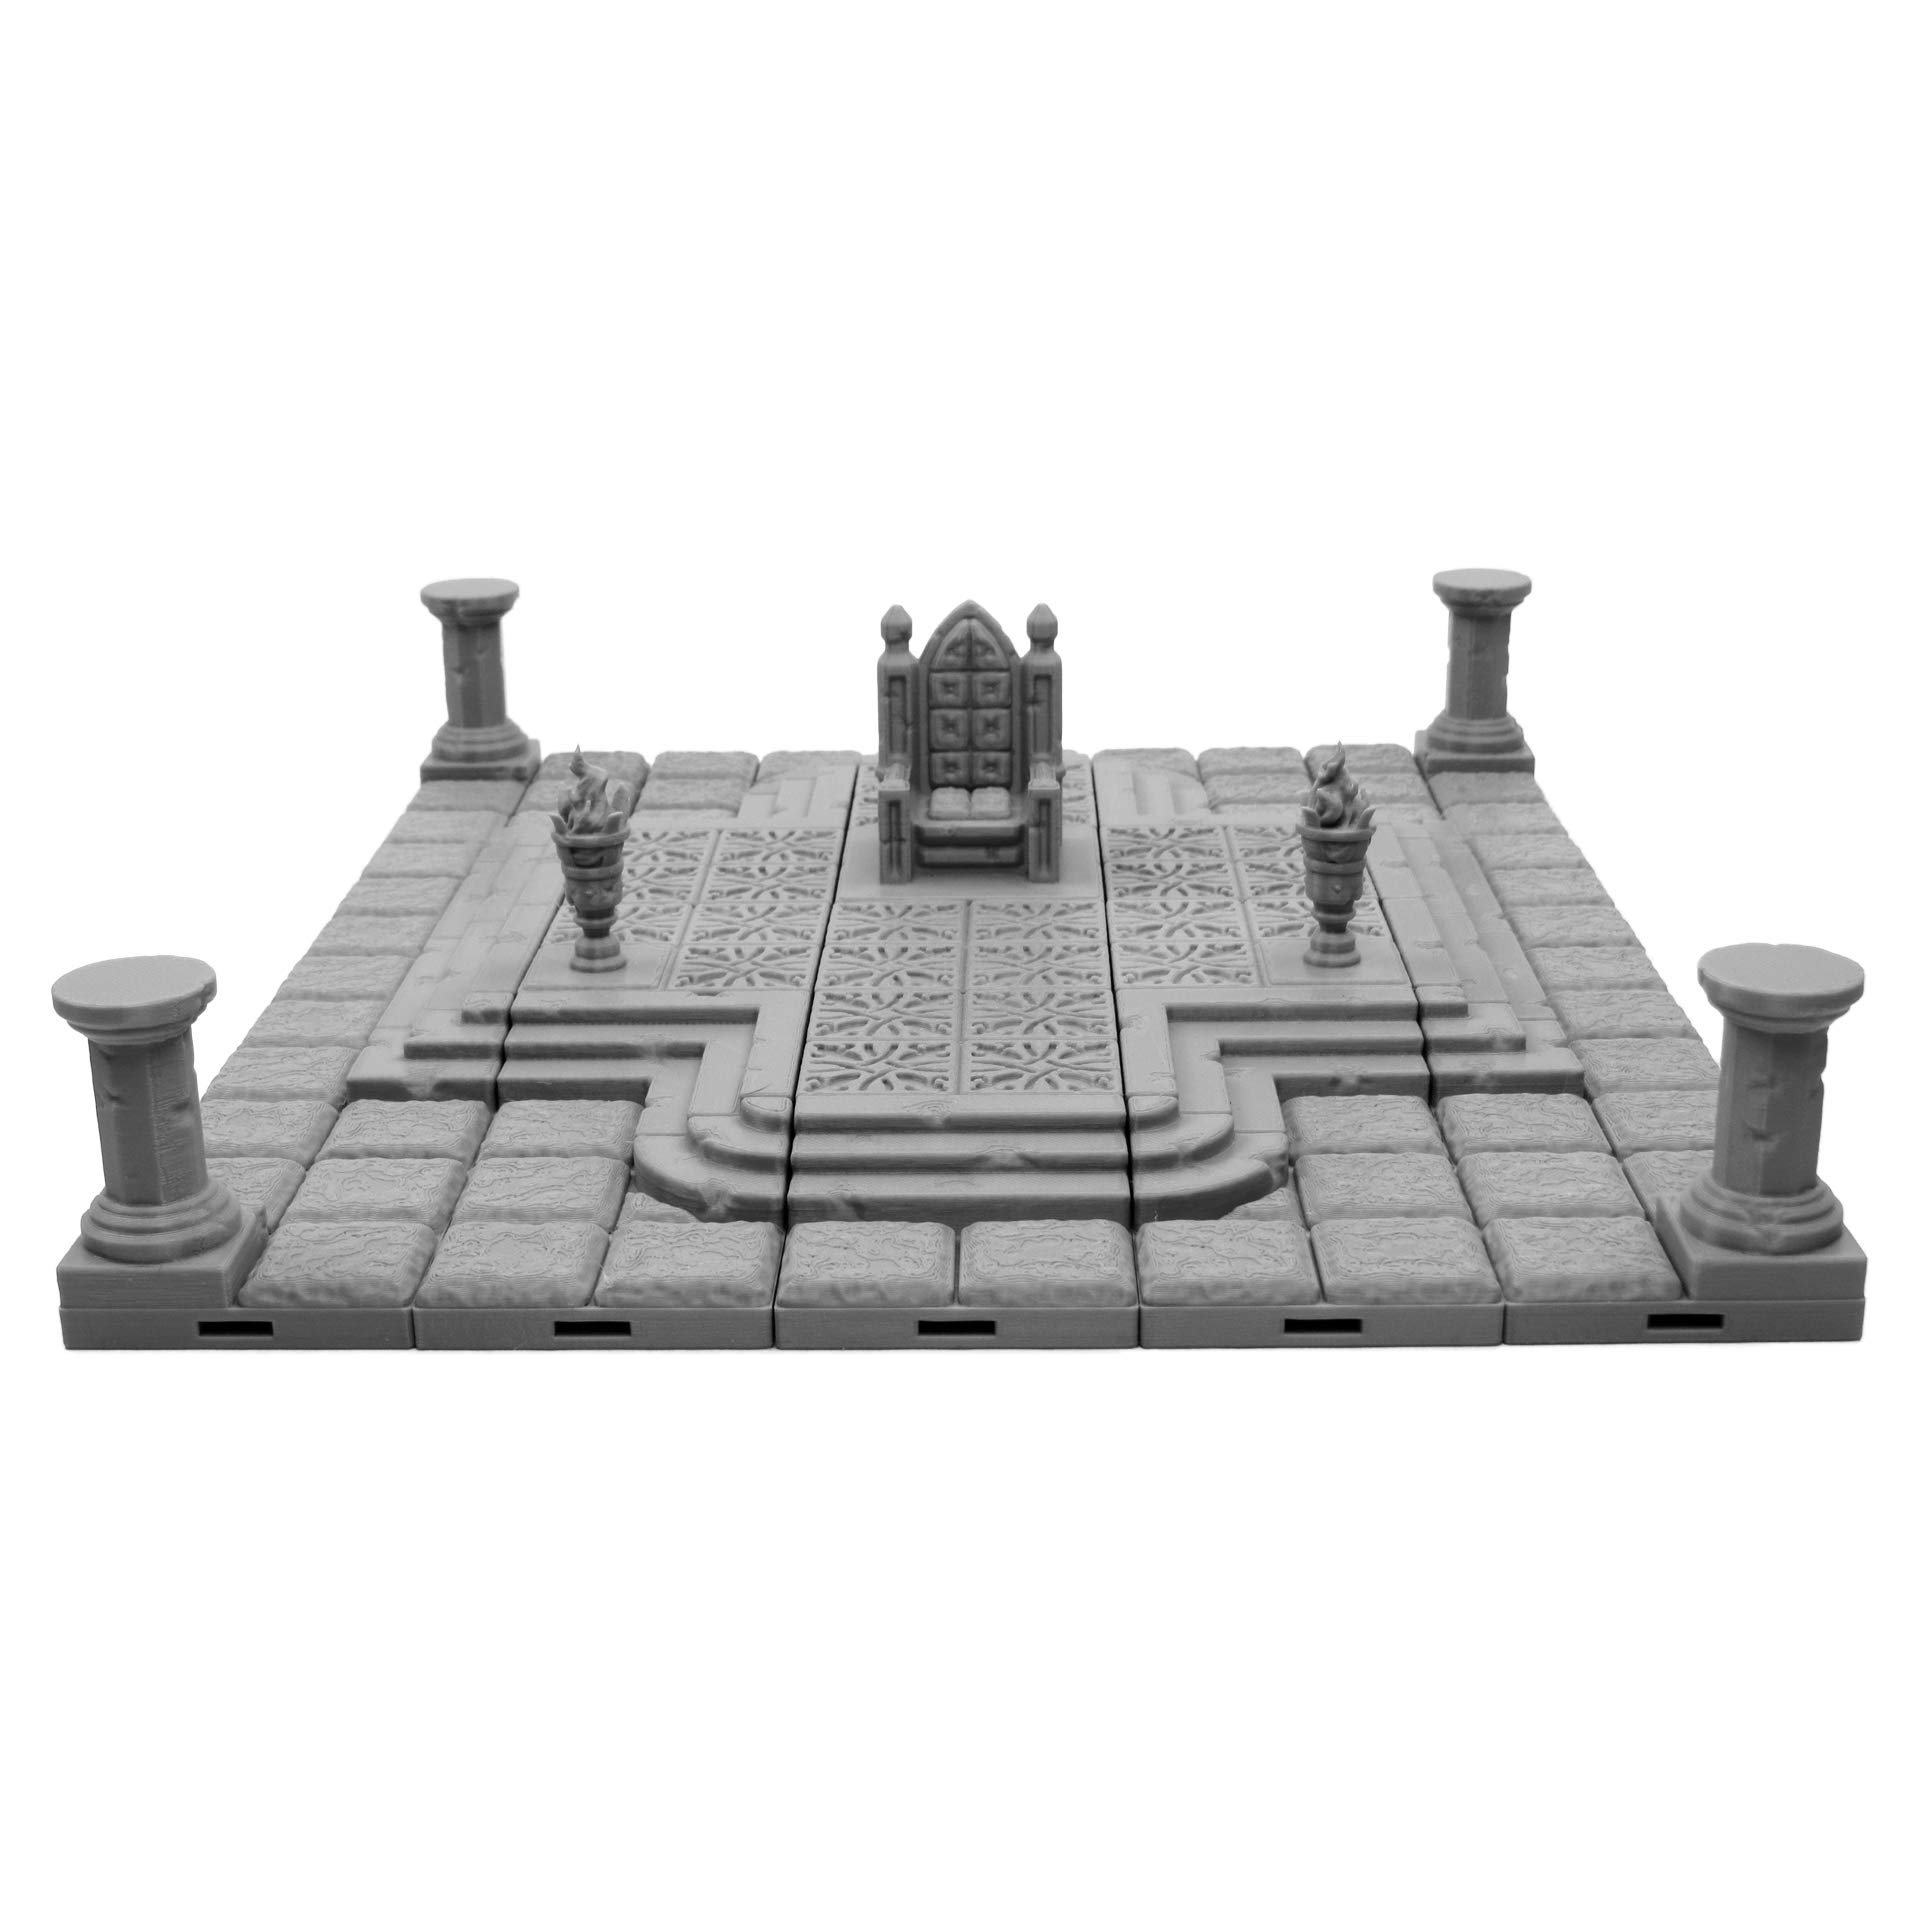 Locking Dungeon Tiles - Throne Room, Terrain Scenery Tabletop 28mm Miniatures Role Playing Game, 3D Printed Paintable, EnderToys